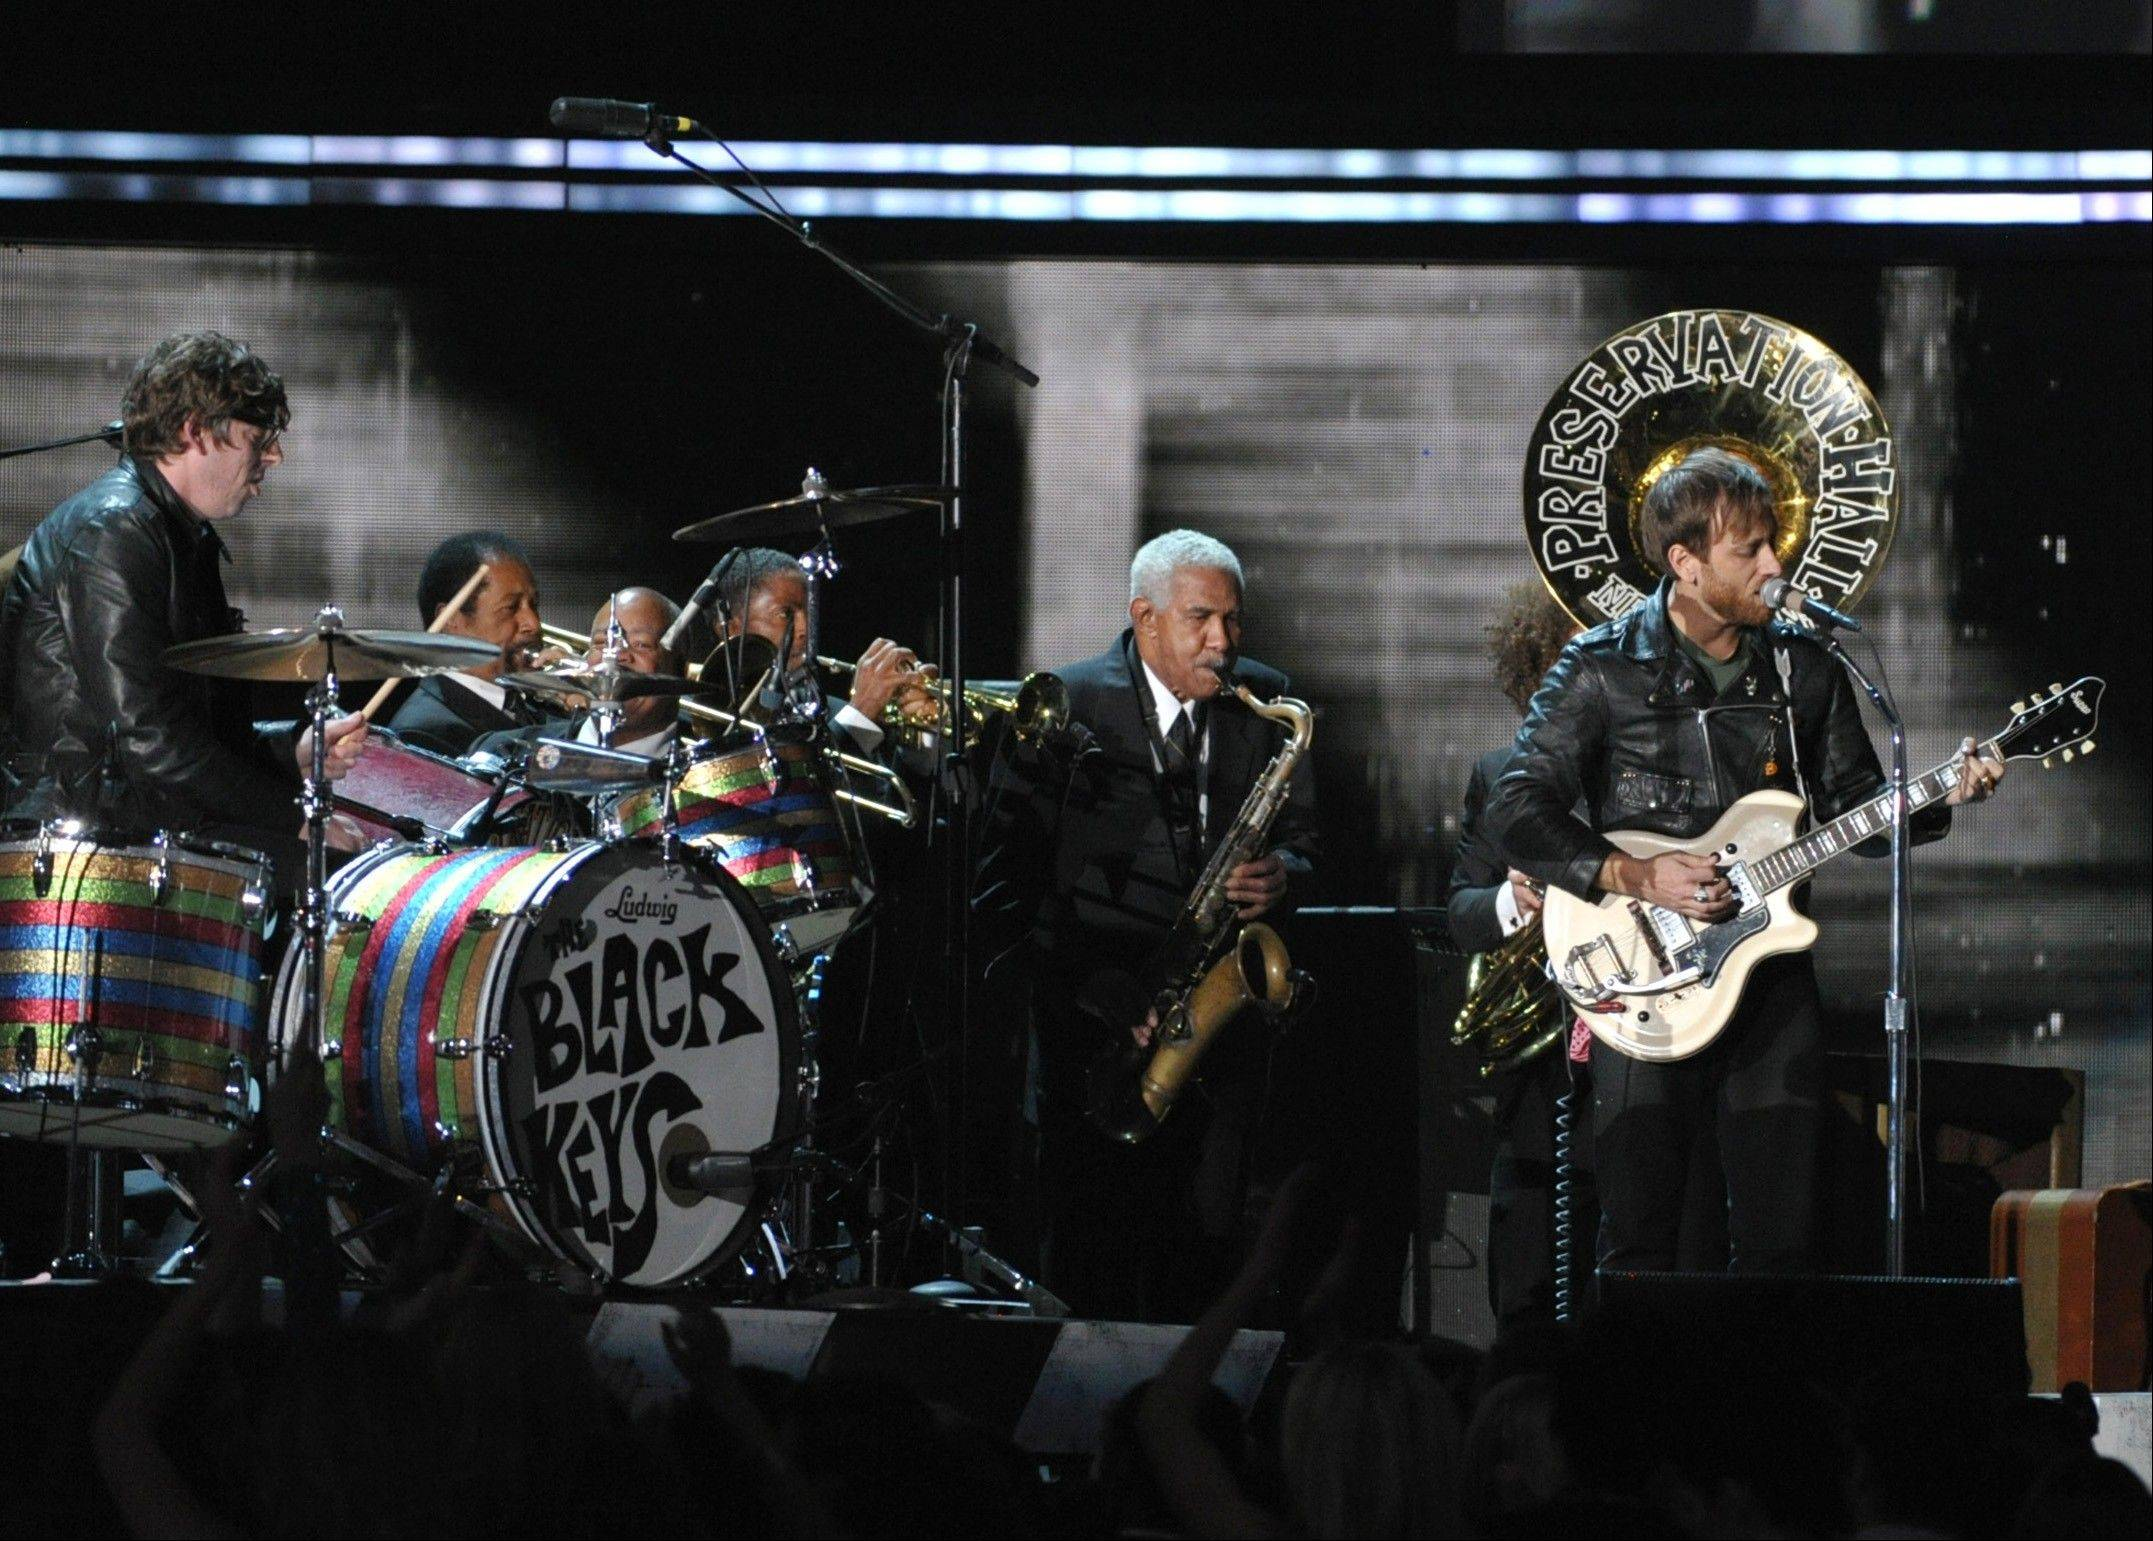 Patrick Carney and Dan Auerbach of musical group The Black Keys perform on stage at the 55th annual Grammy Awards on Sunday, Feb. 10, 2013, in Los Angeles.